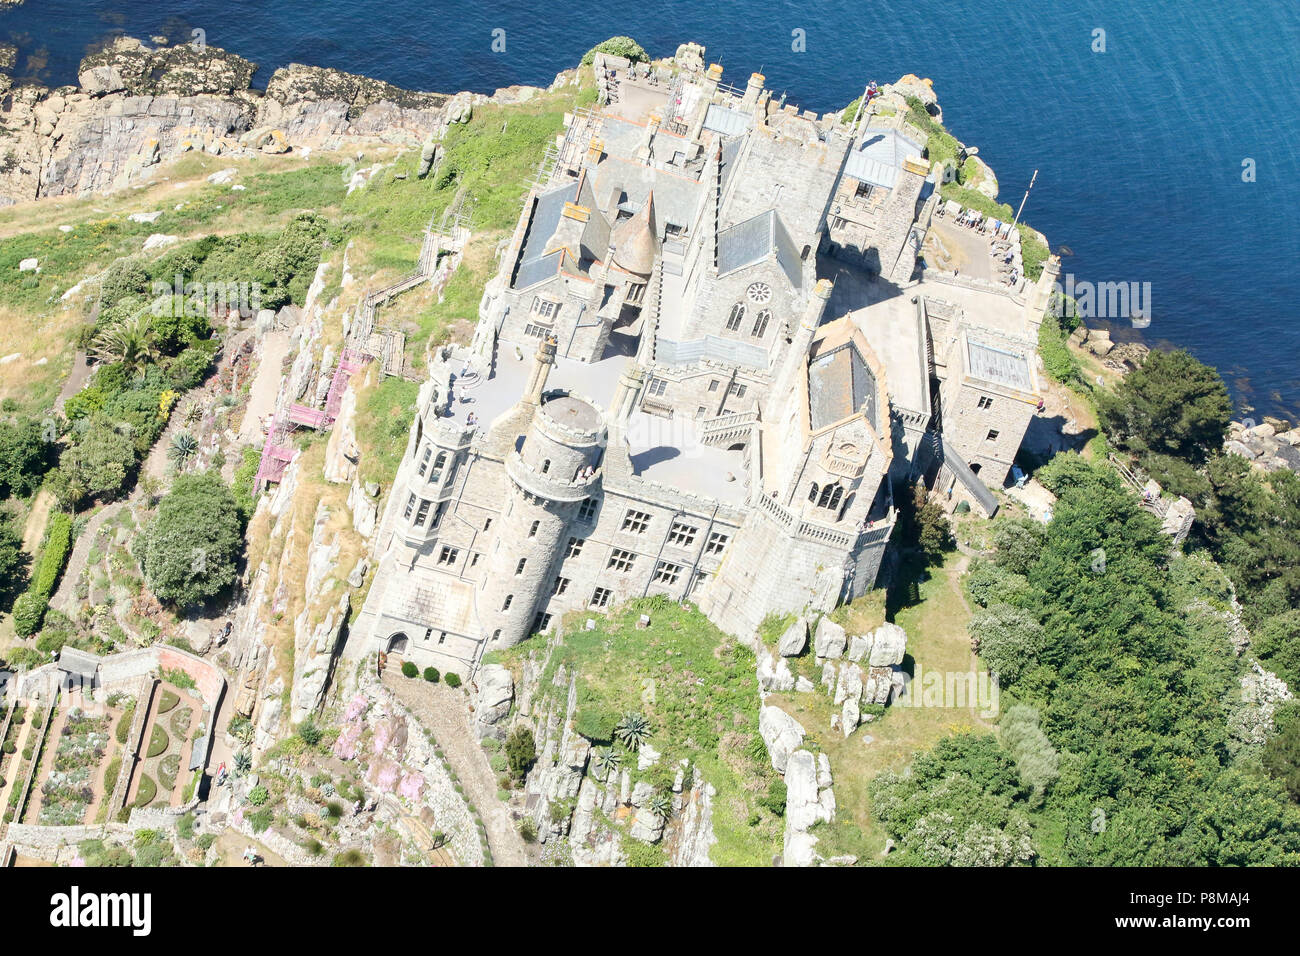 St Michael's Mount, Cornwall, close up, birds eye view. - Stock Image